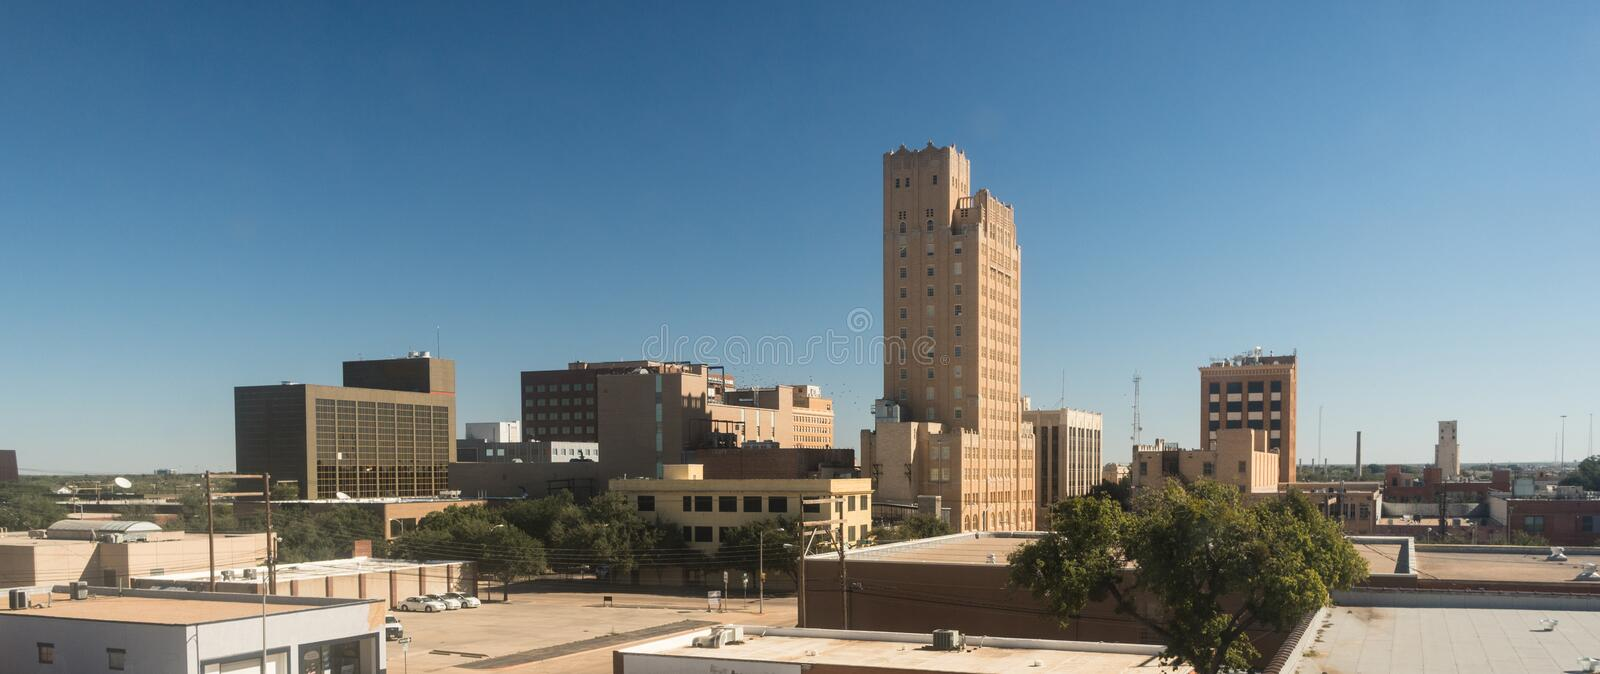 Fall-Nachmittags-blauer Himmel Lubbock Texas Downtown City Skyline stockfotografie